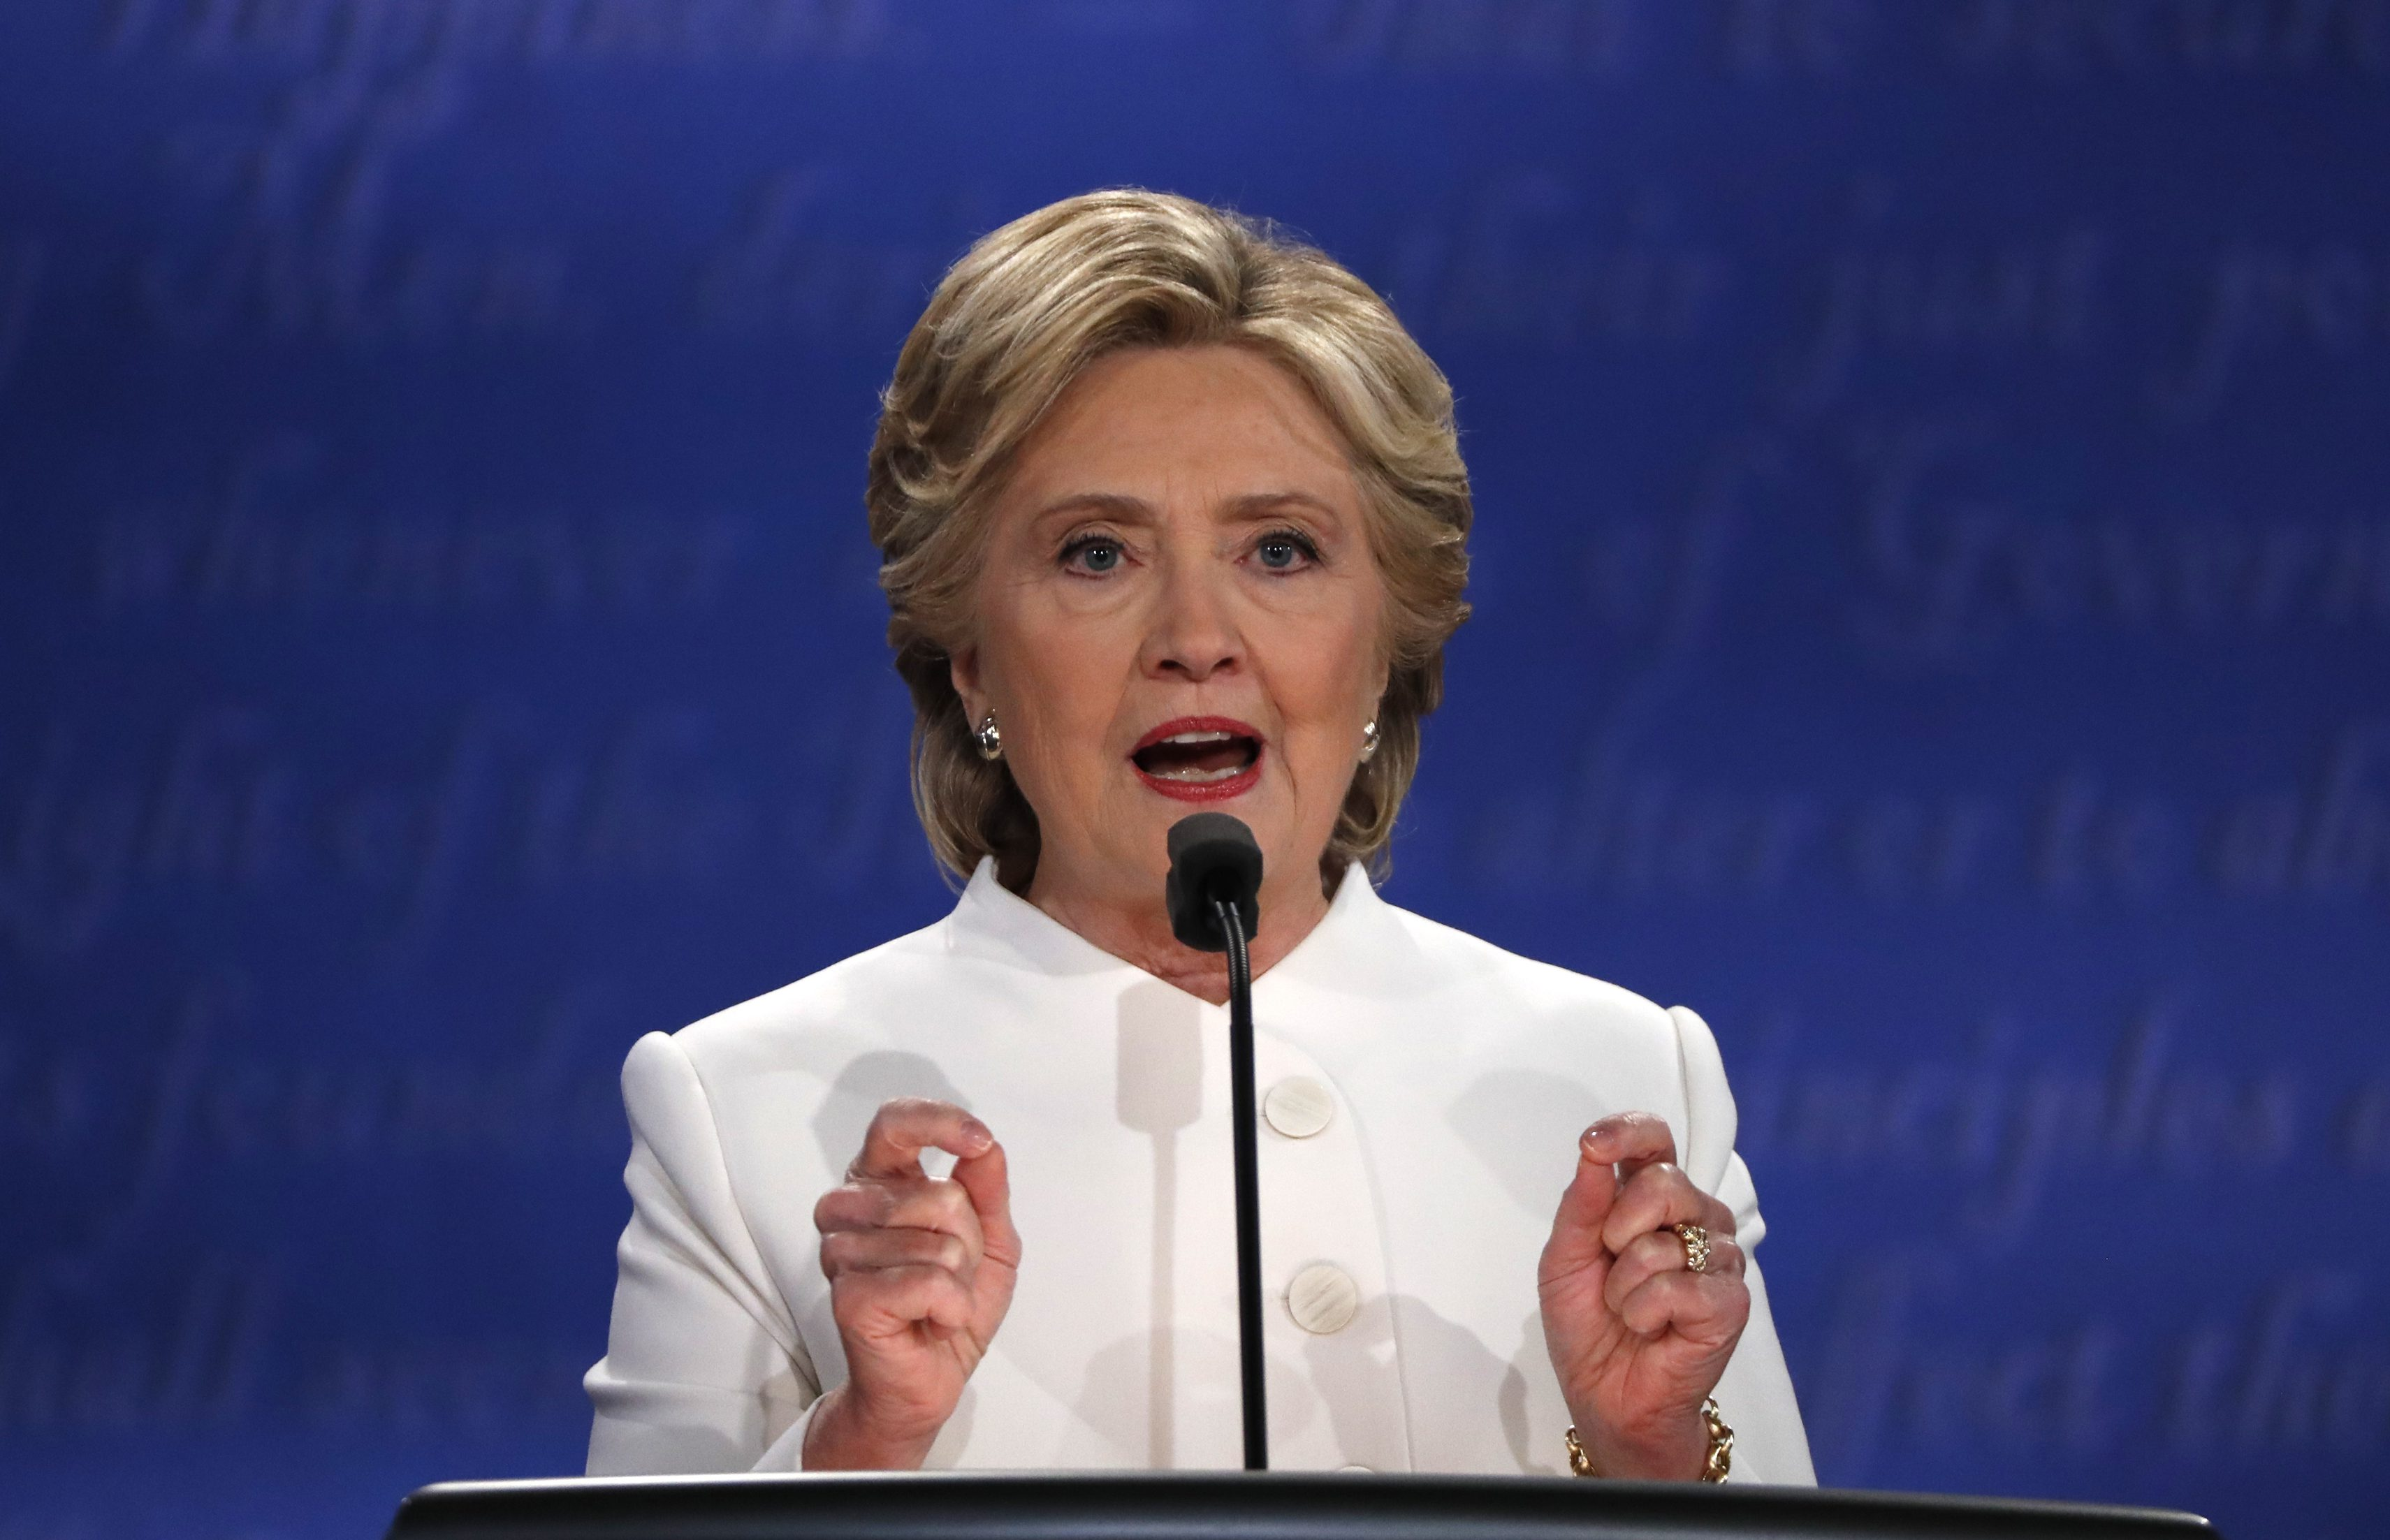 Democratic presidential nominee Hillary Clinton speaks during the third and final 2016 presidential campaign debate with Republican U.S. presidential nominee Donald Trump (not pictured) at UNLV in Las Vegas, Nevada, U.S., October 19, 2016.